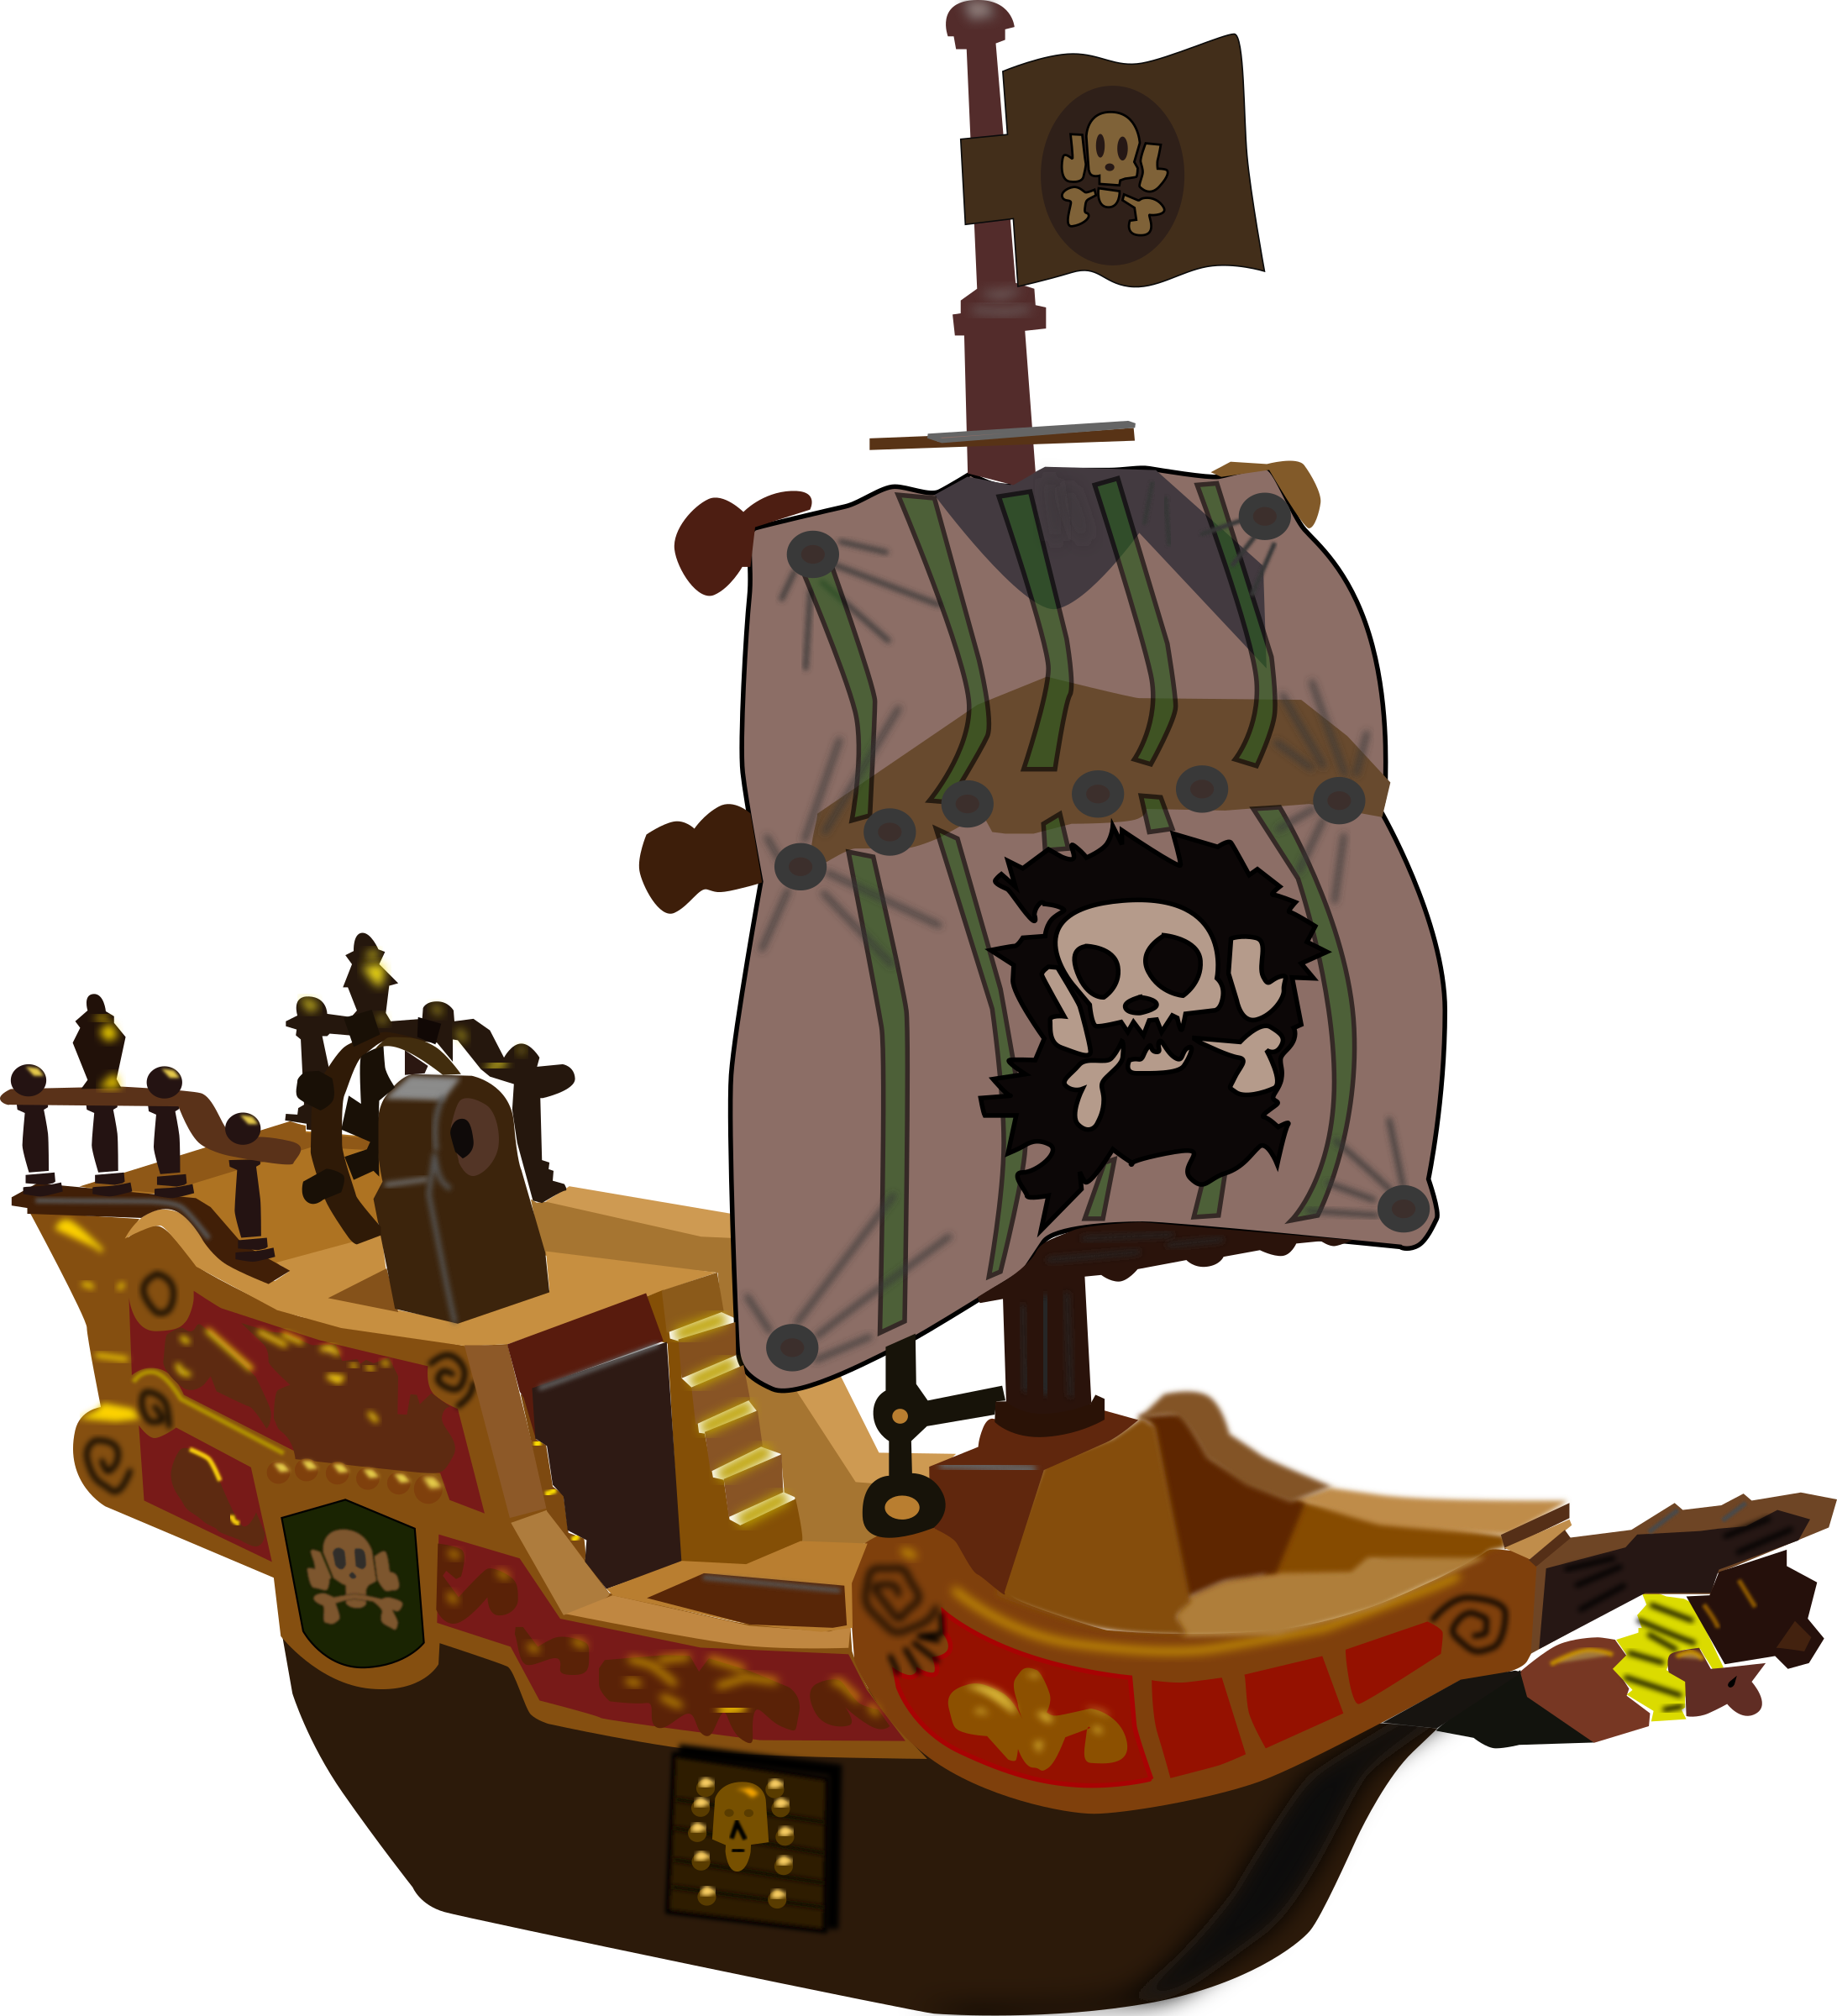 Pirate ship png